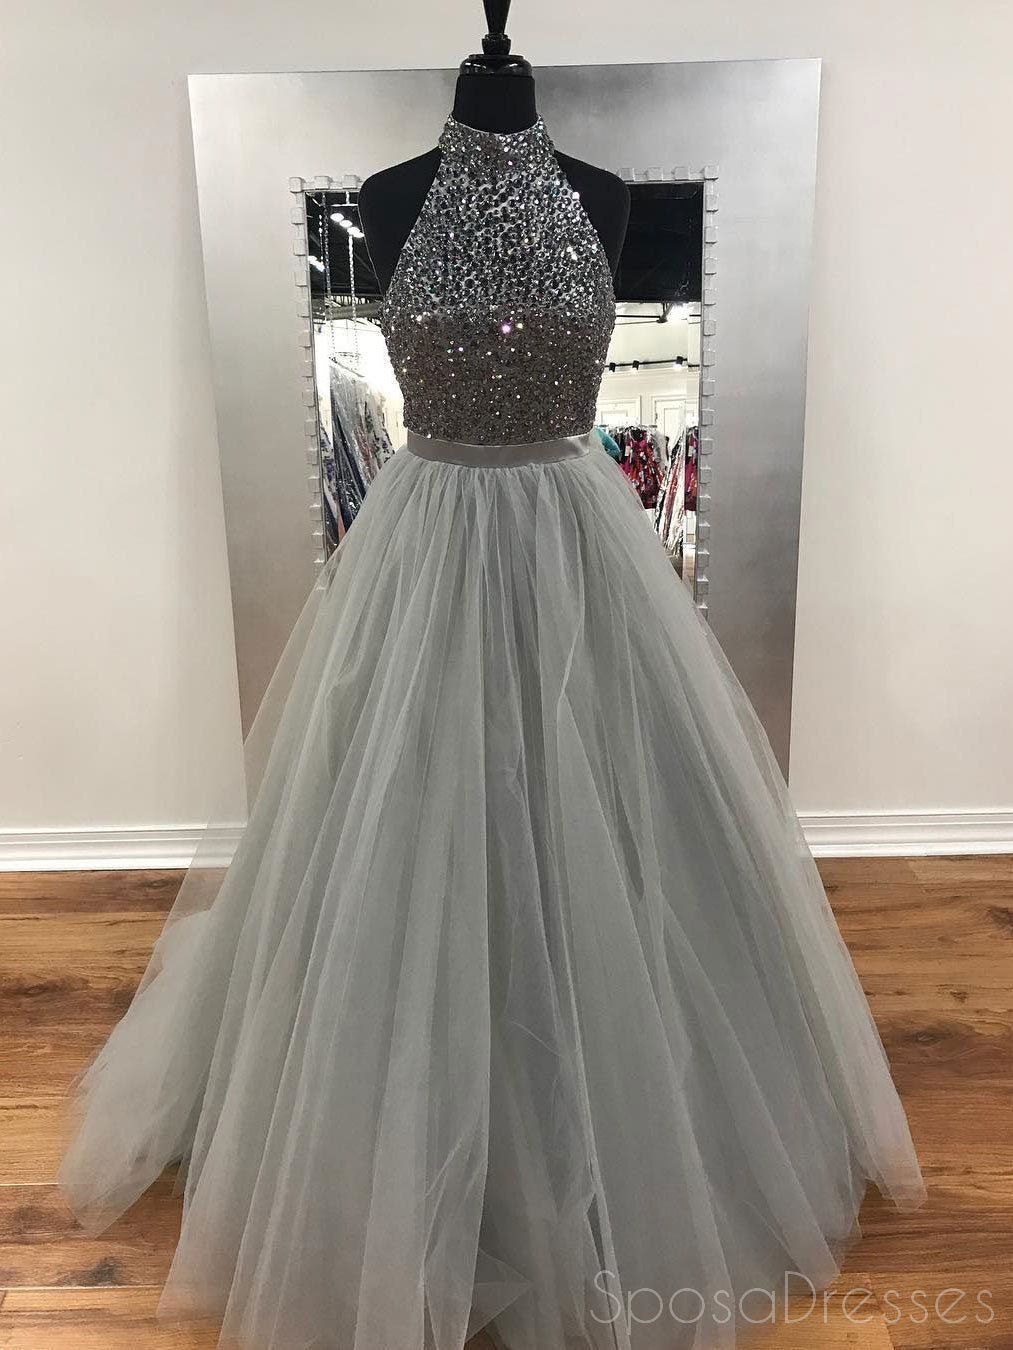 Cheap Prom Dresses For Sale Online Sposadresses